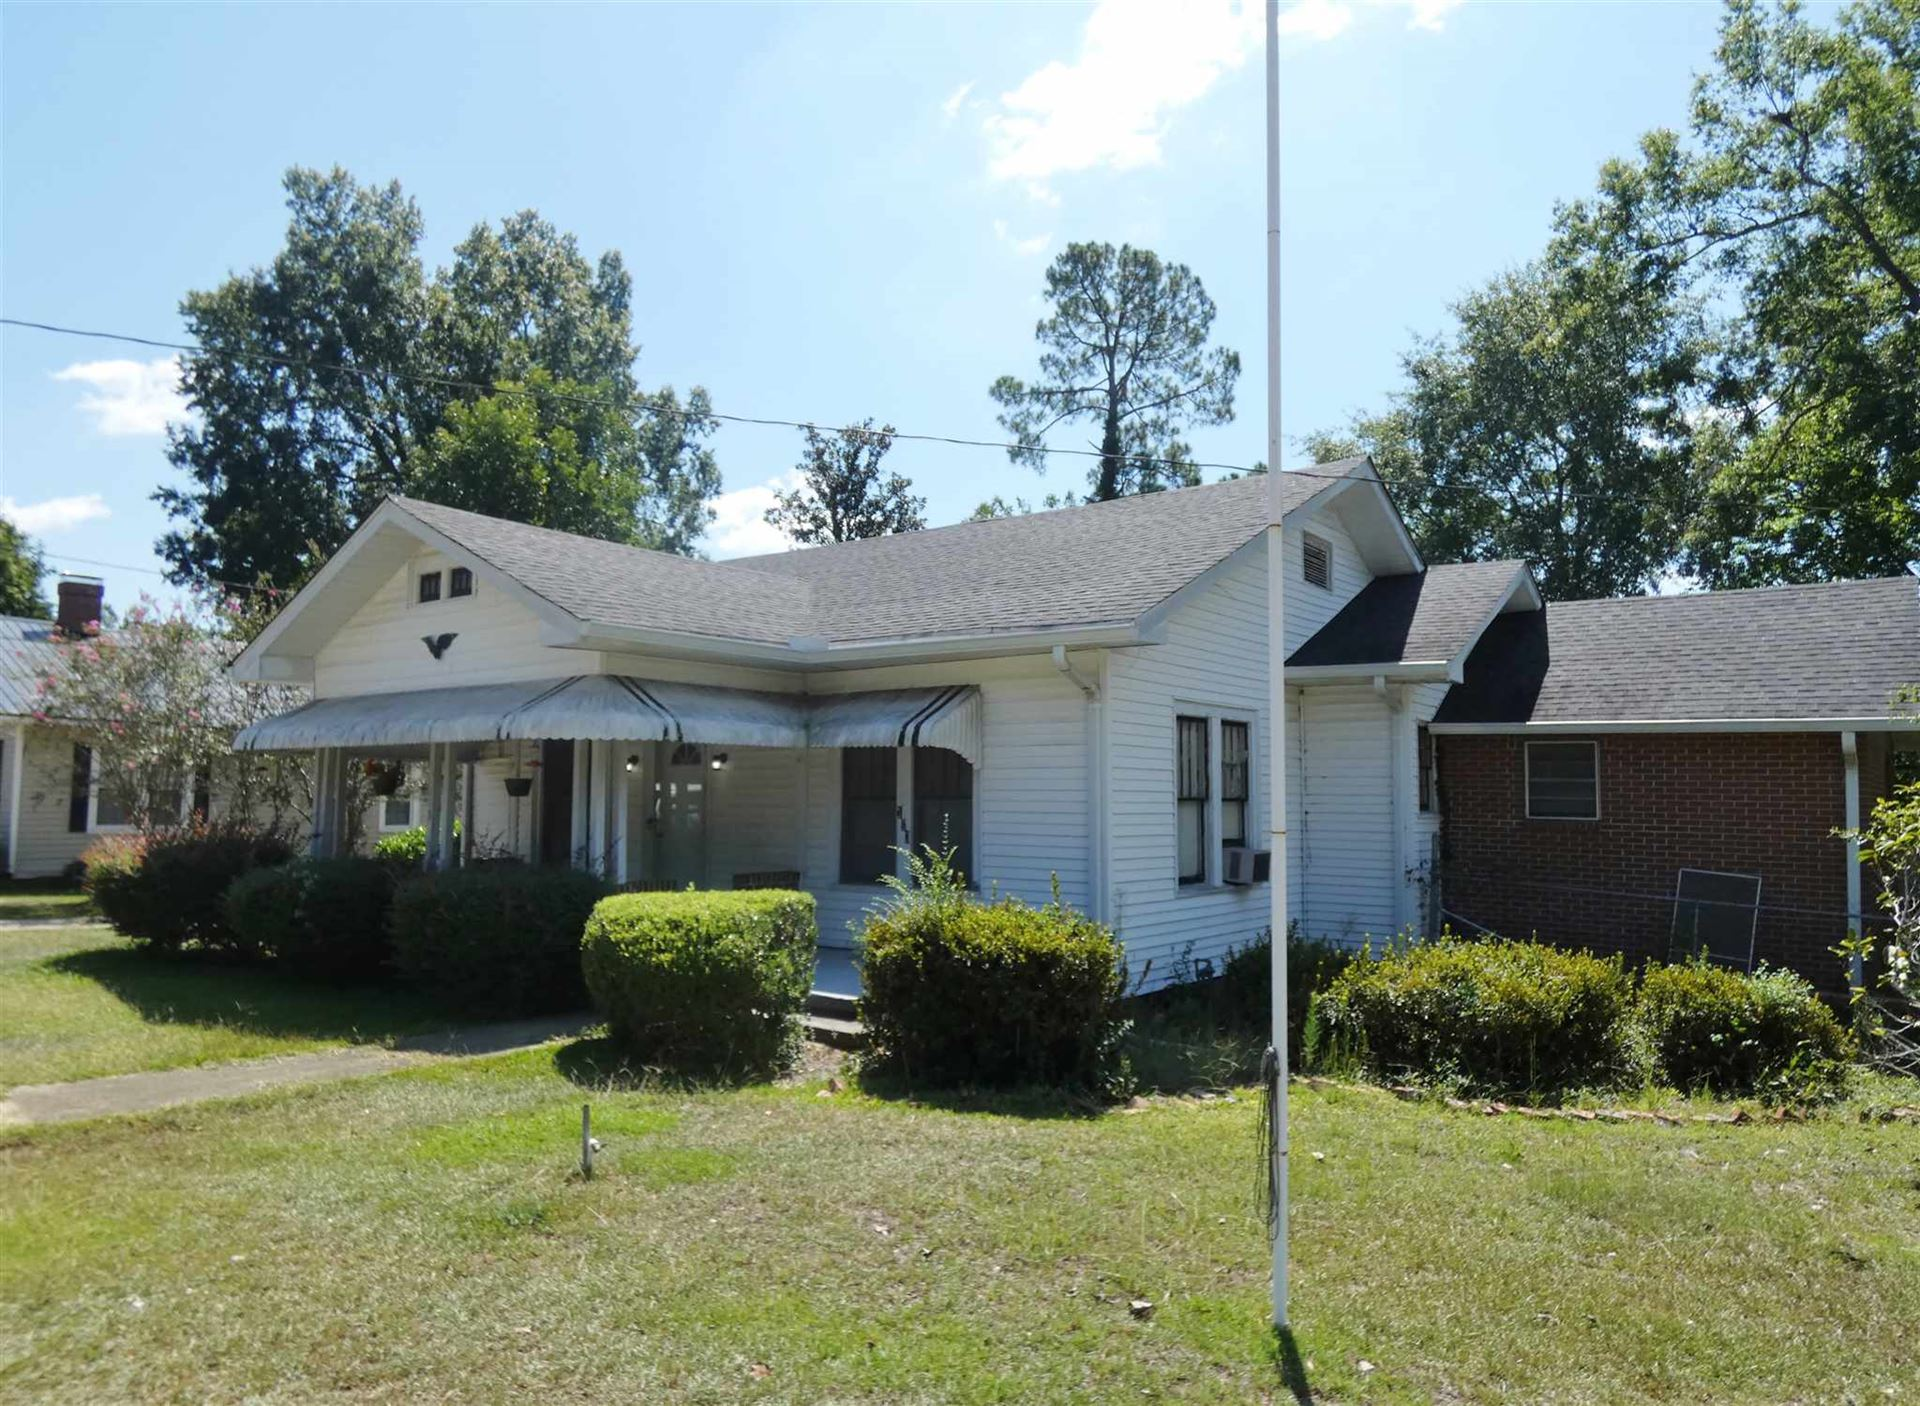 Photo of 113 W McCarty St, Sandersville, GA 31082 (MLS # 8653338)